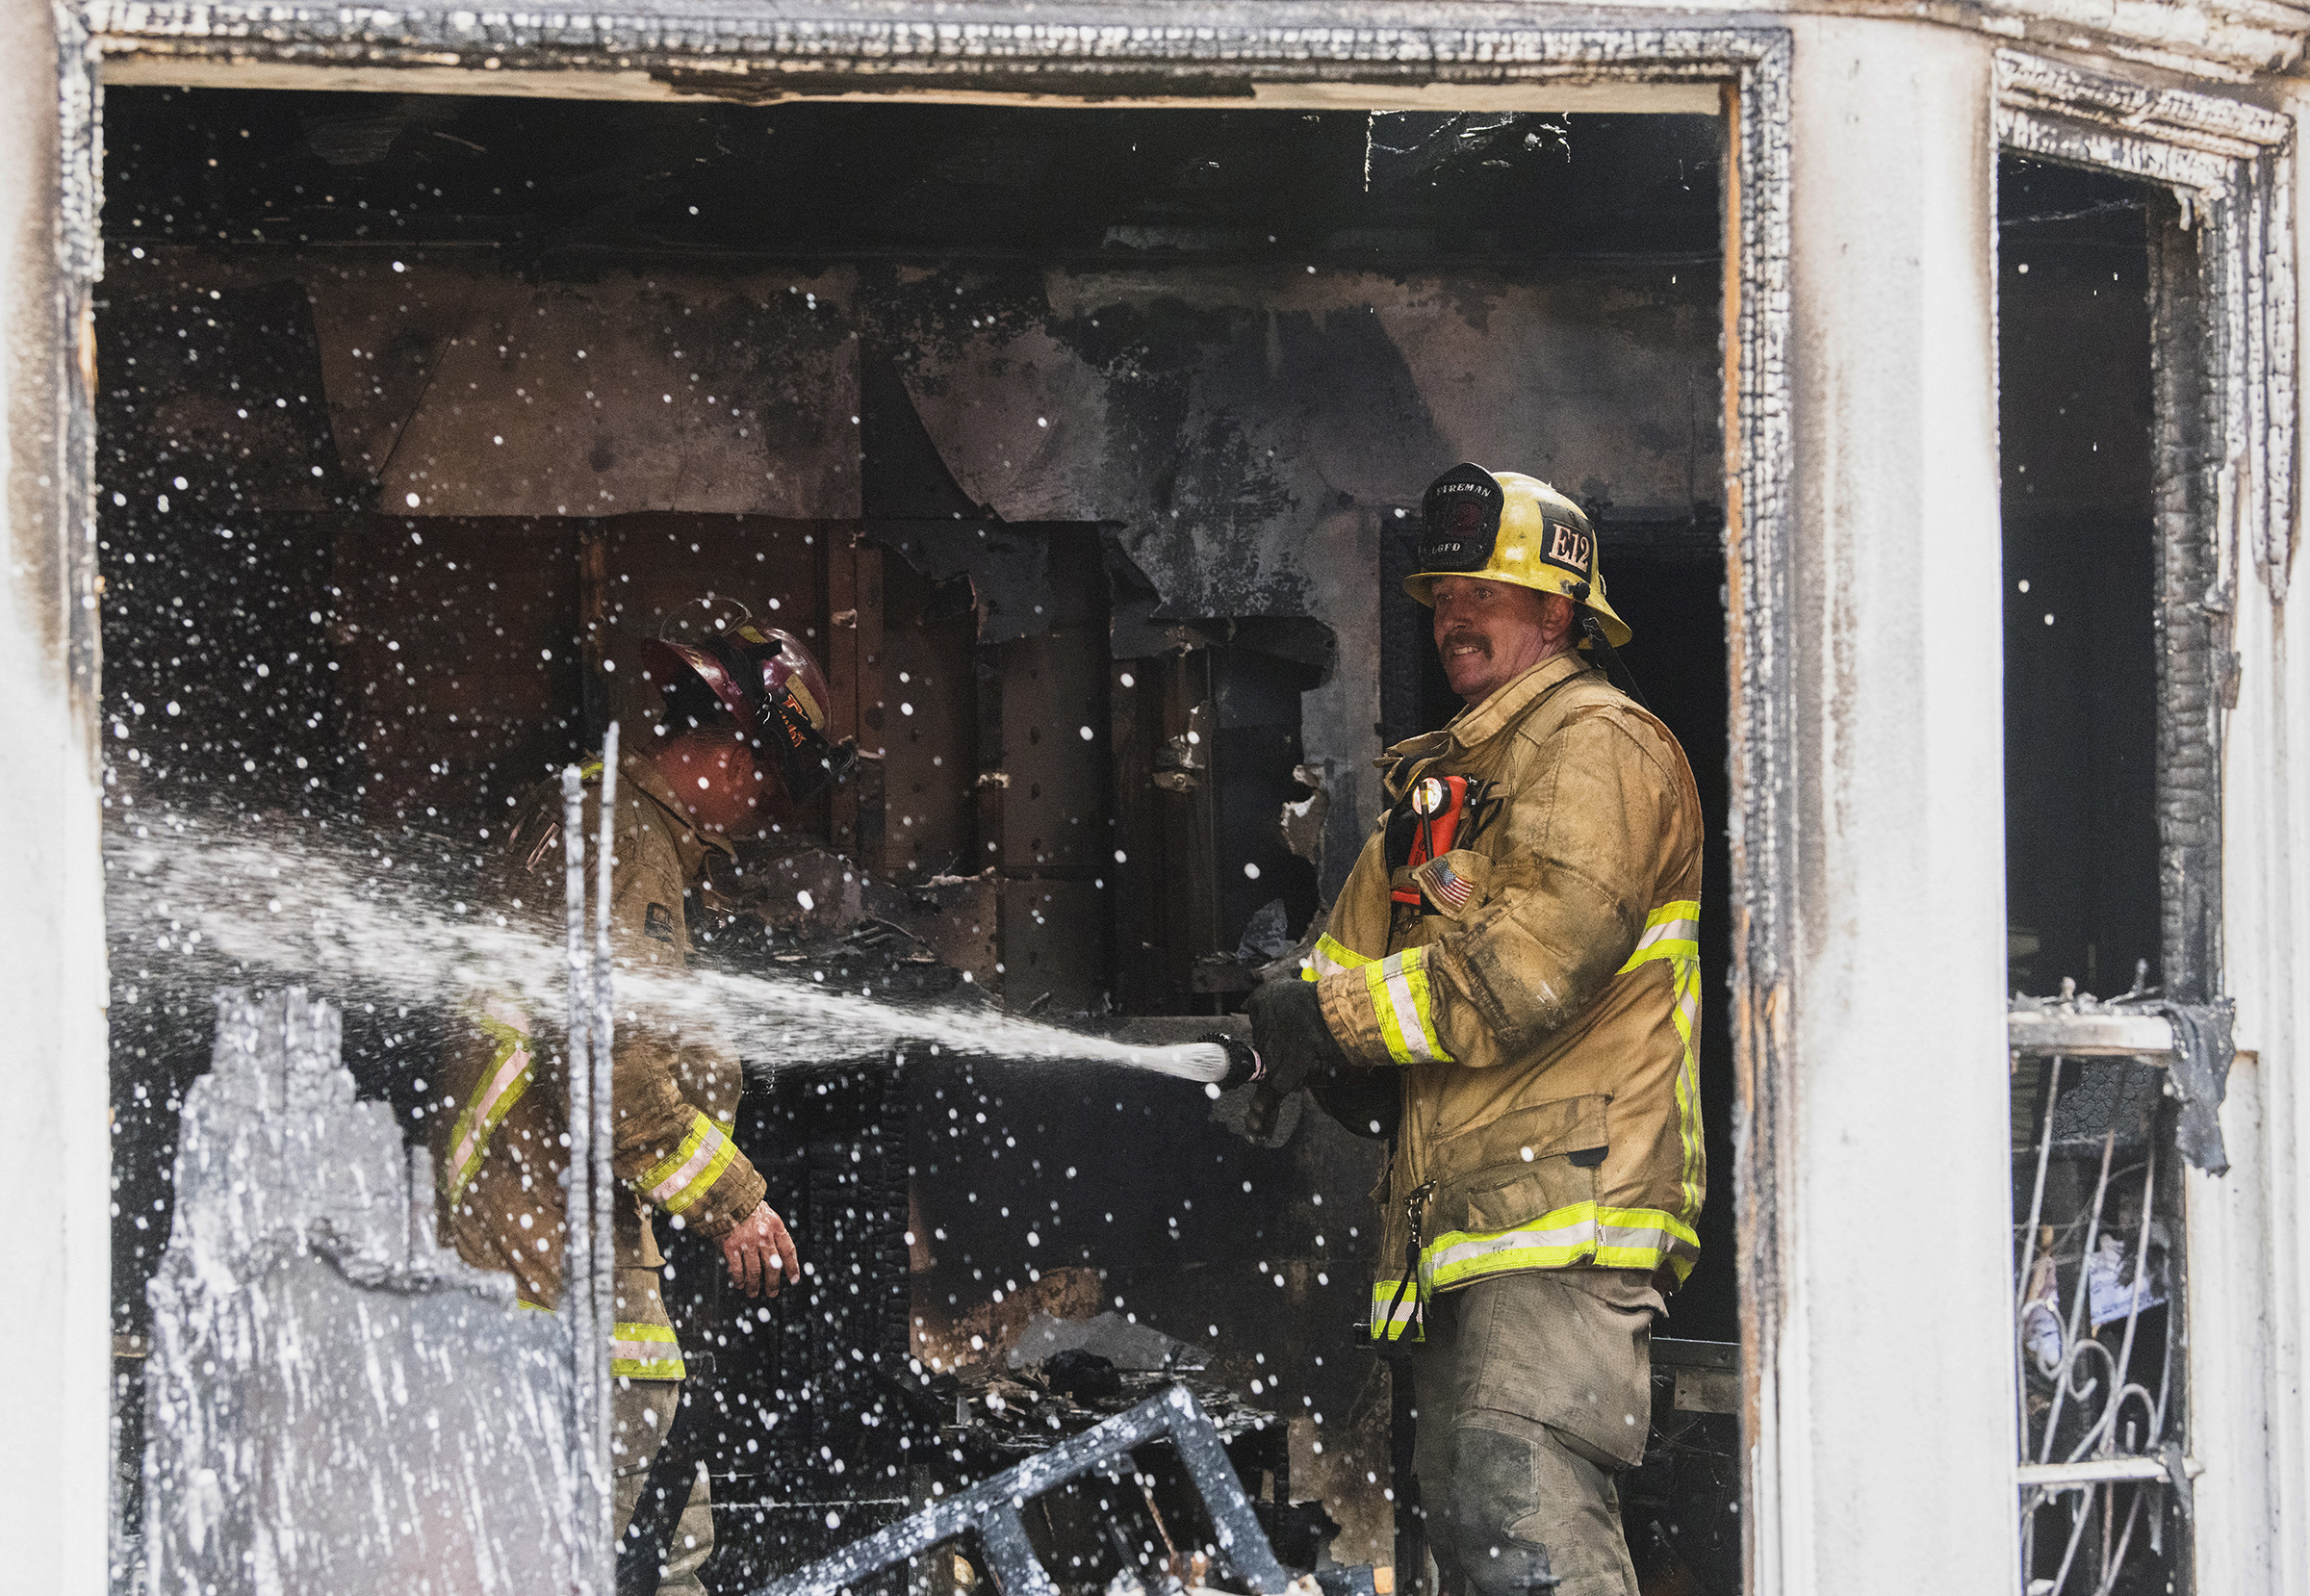 A firefighter puts out hot spots inside the home as Long Beach firefighters knock down an abandoned home fire at Daisy Avenue and Burnett Street in Long Beach September 4, 2018.